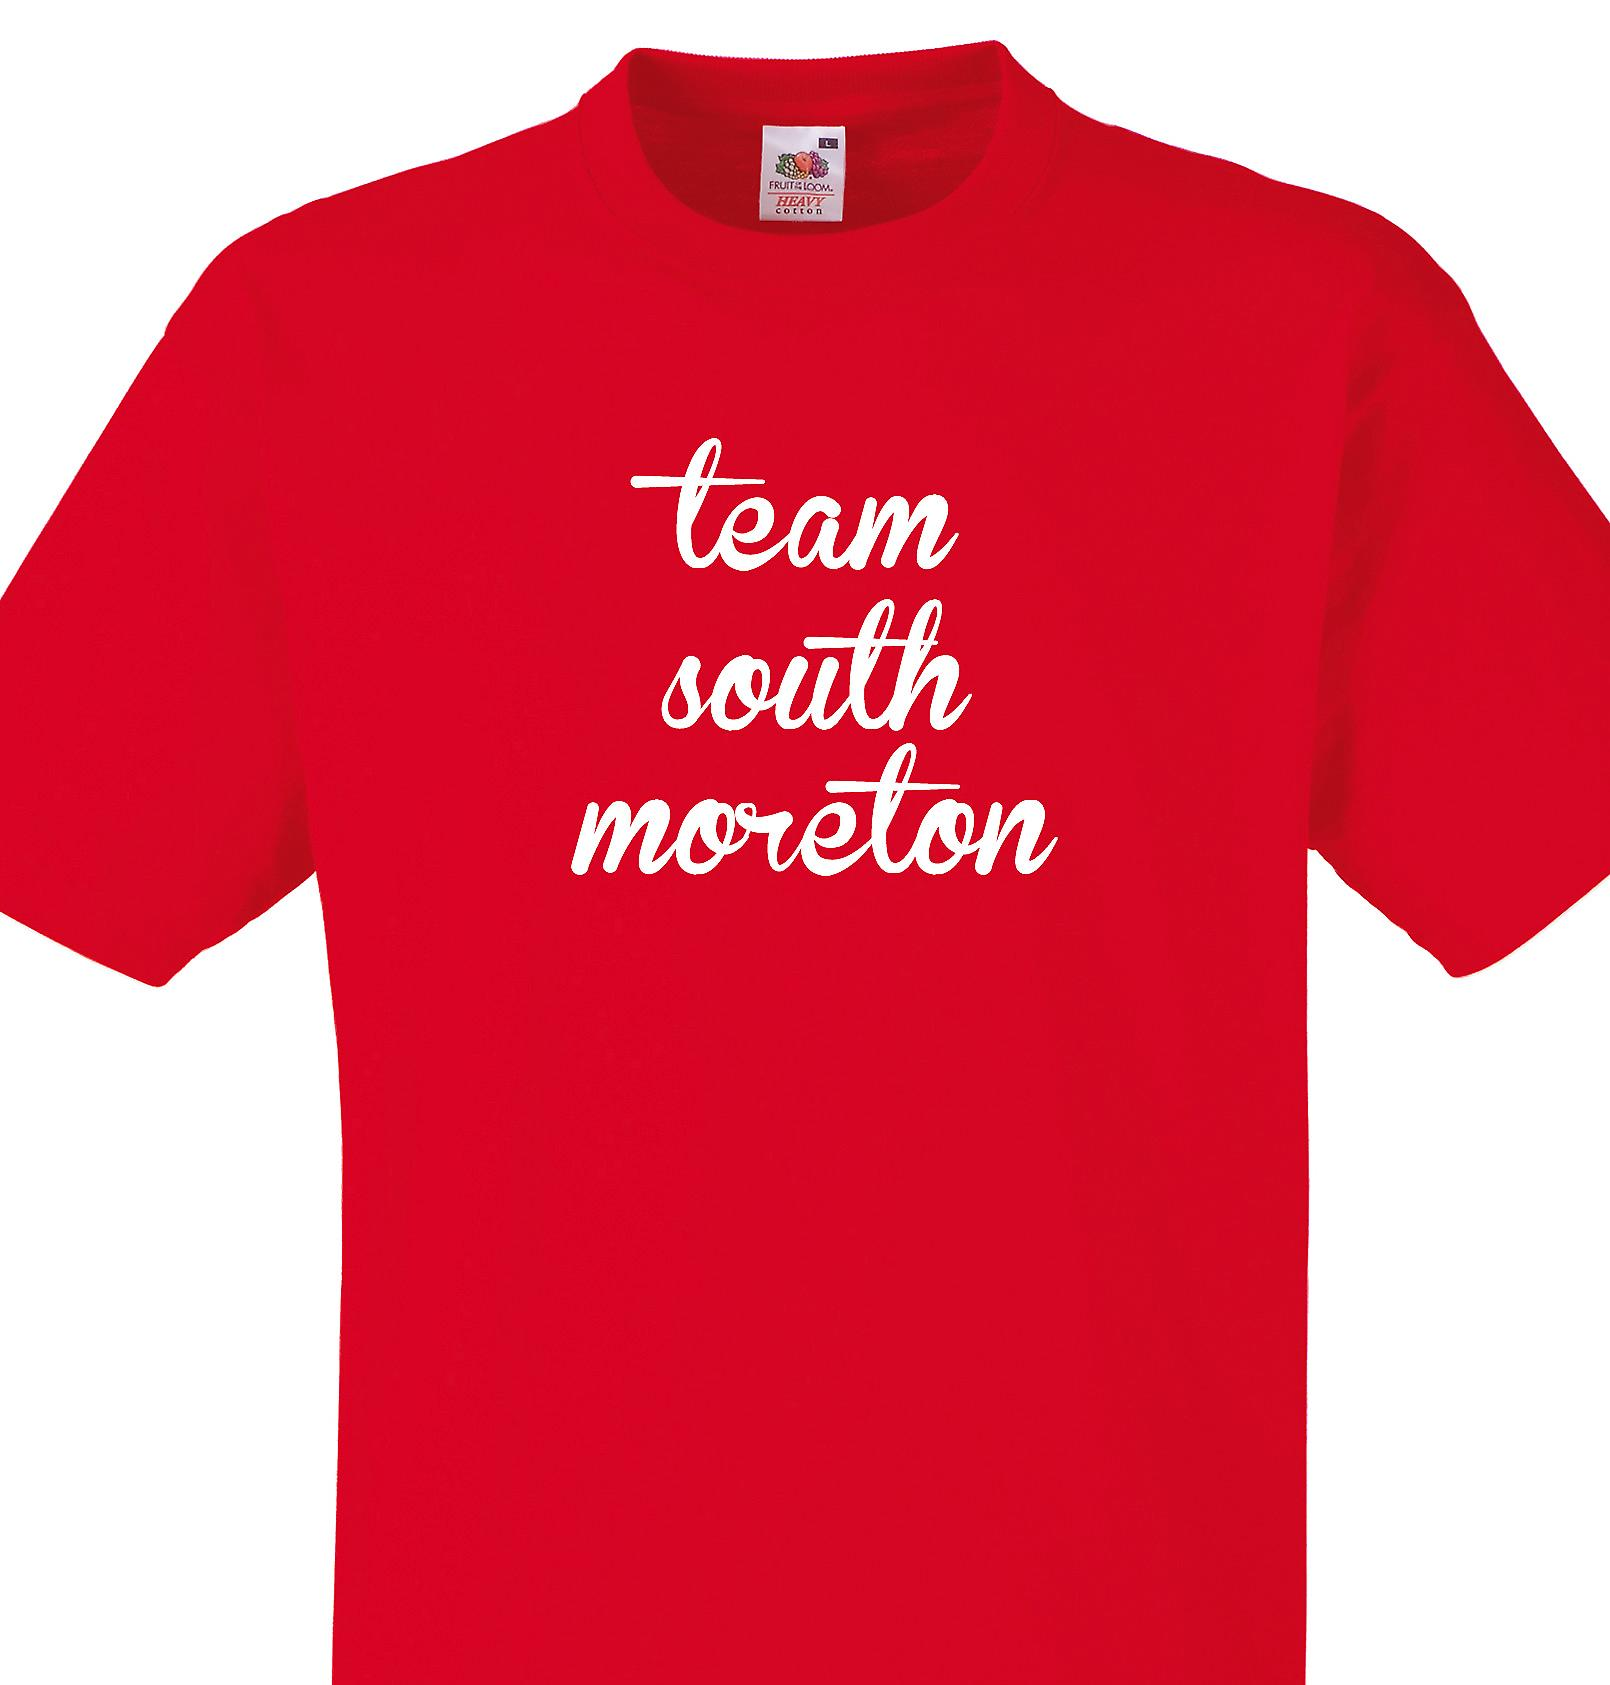 Team South moreton Red T shirt